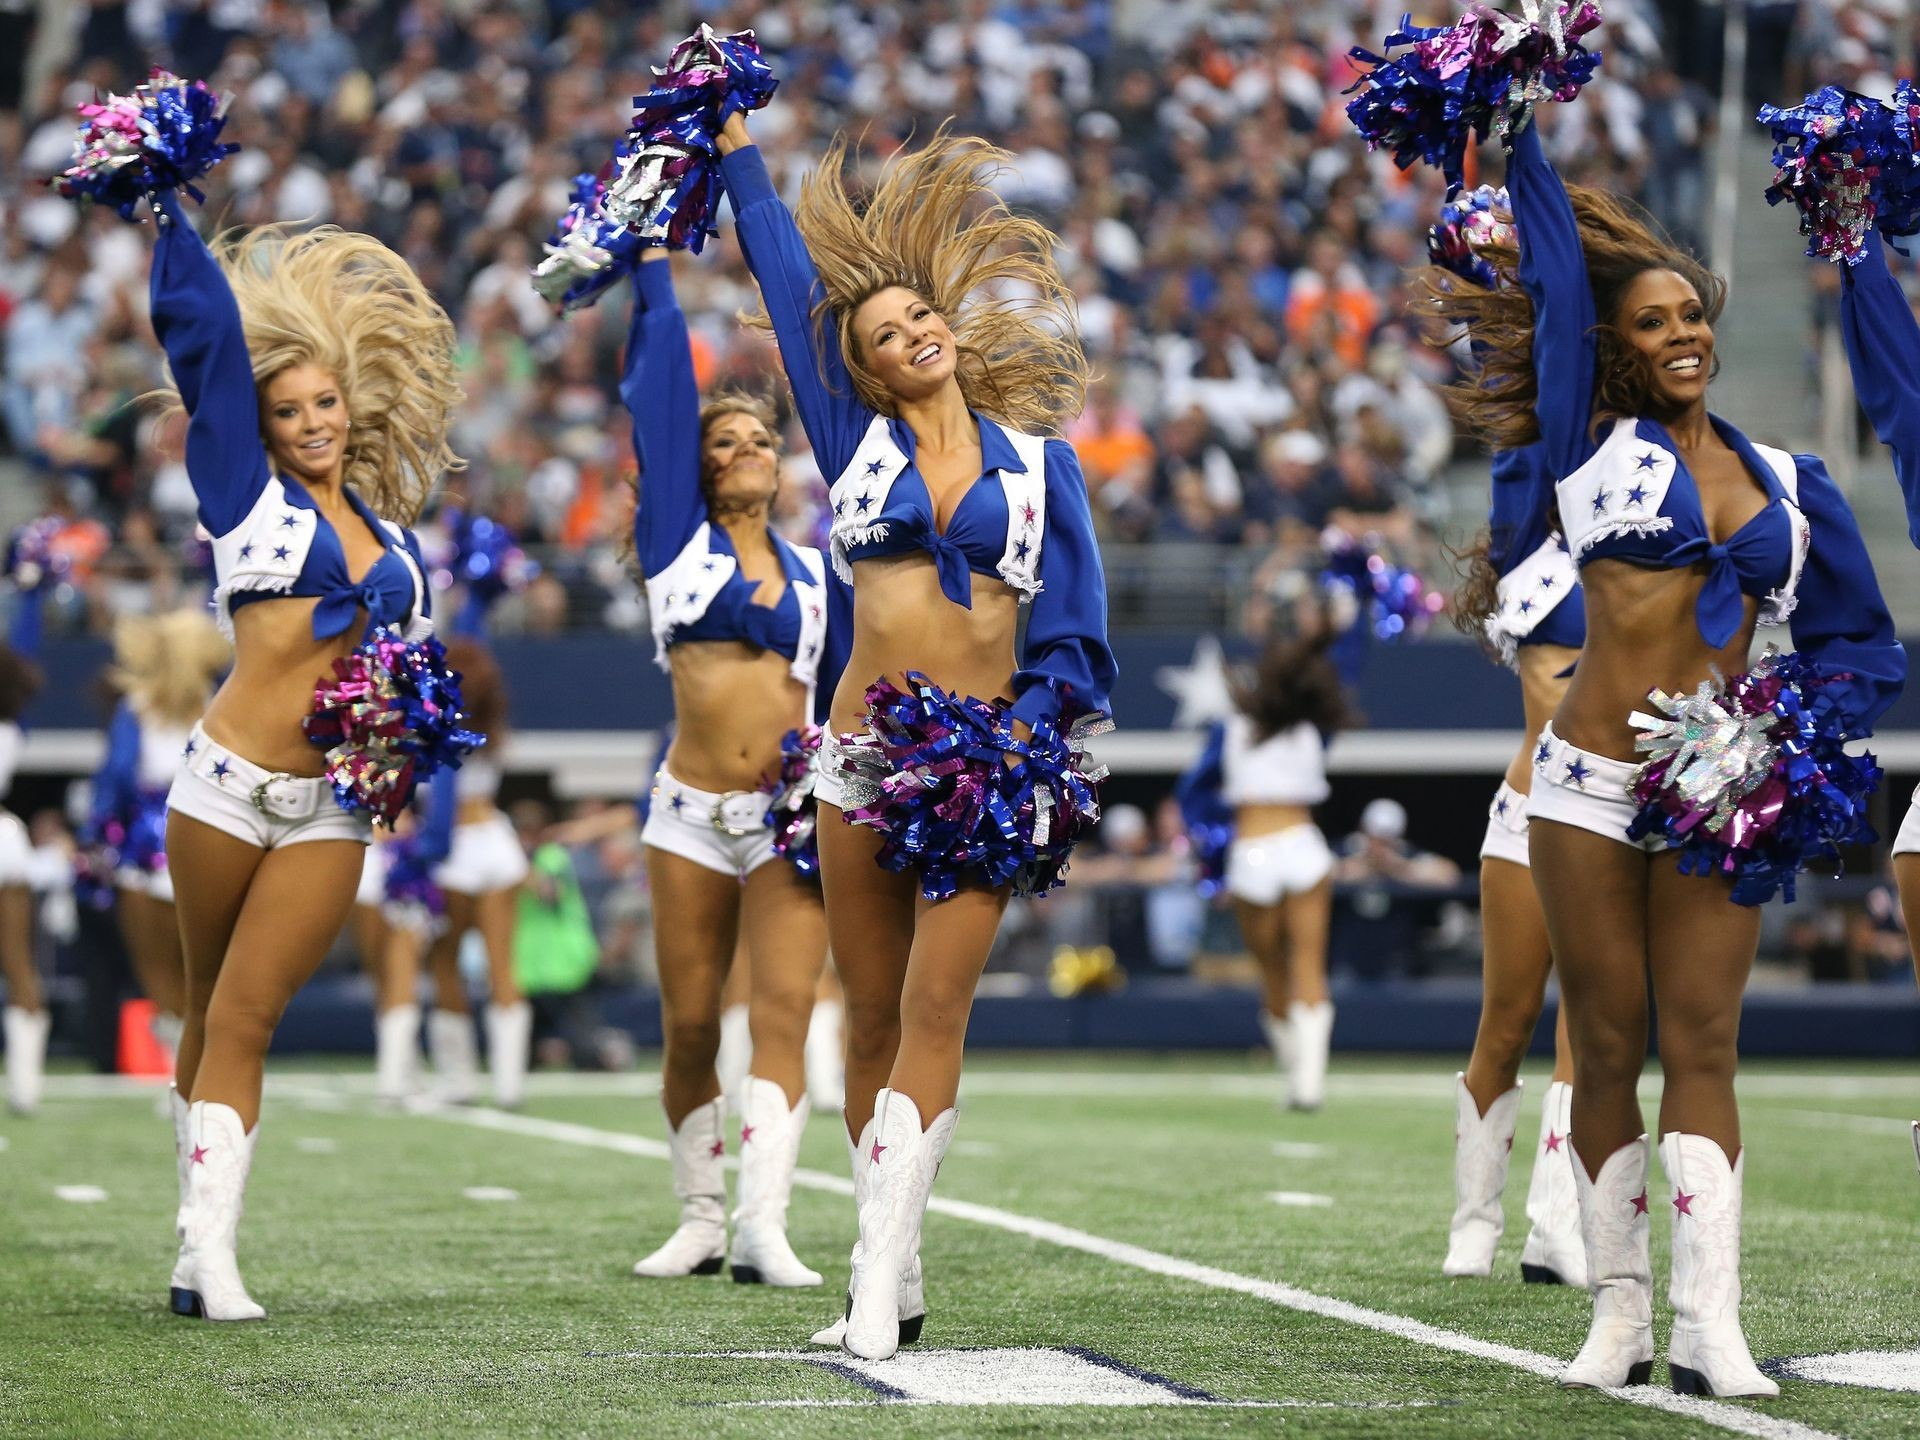 A reporter recently asked the Dallas Cowboys cheerleaders and team members  where they like to hang